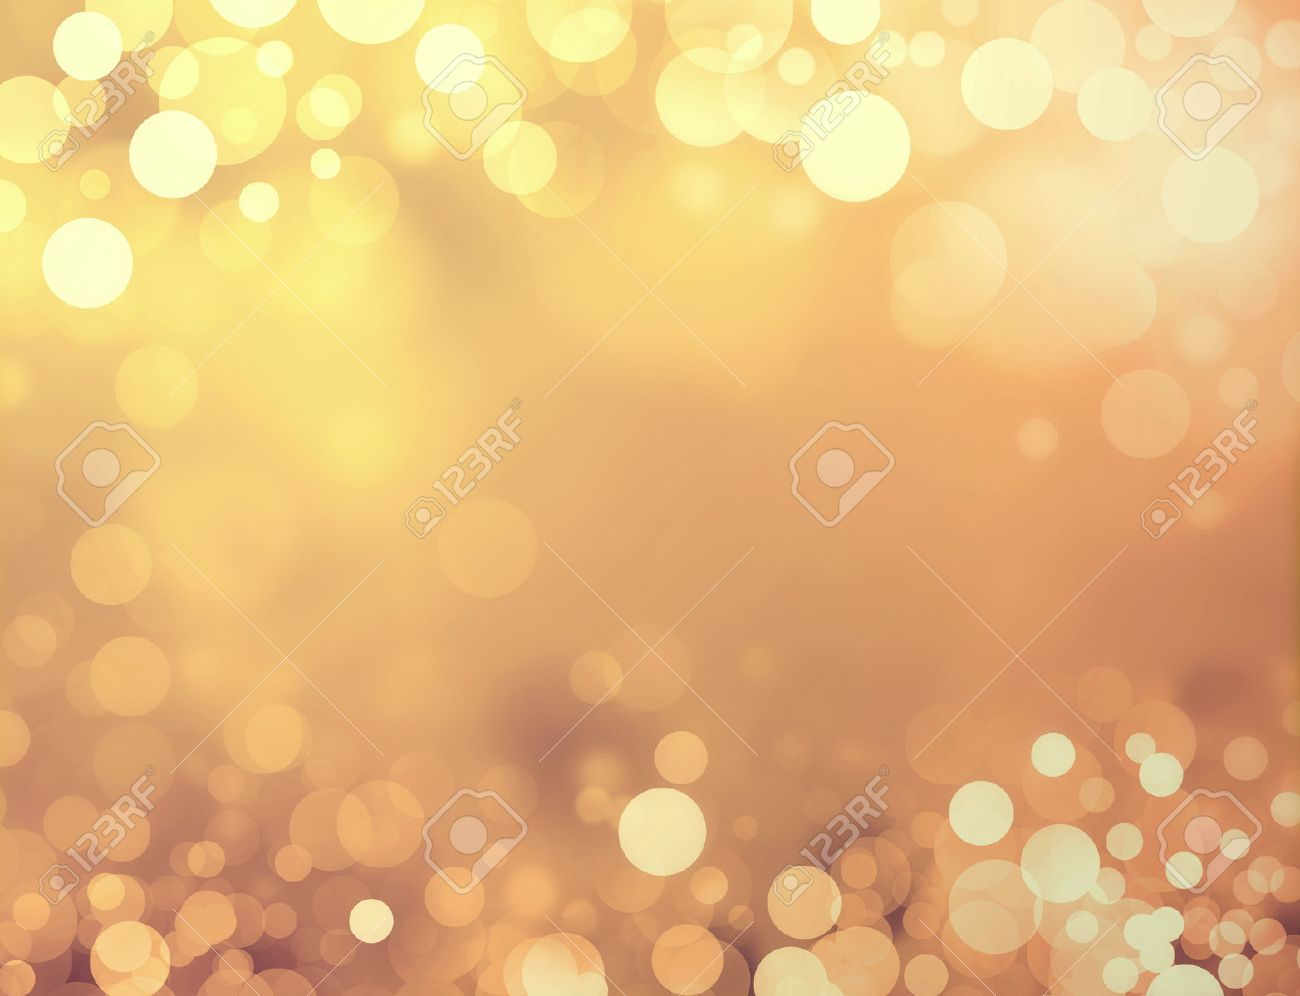 Shiny gold background with blurry circles and sparkles Stock Photo - 46142879